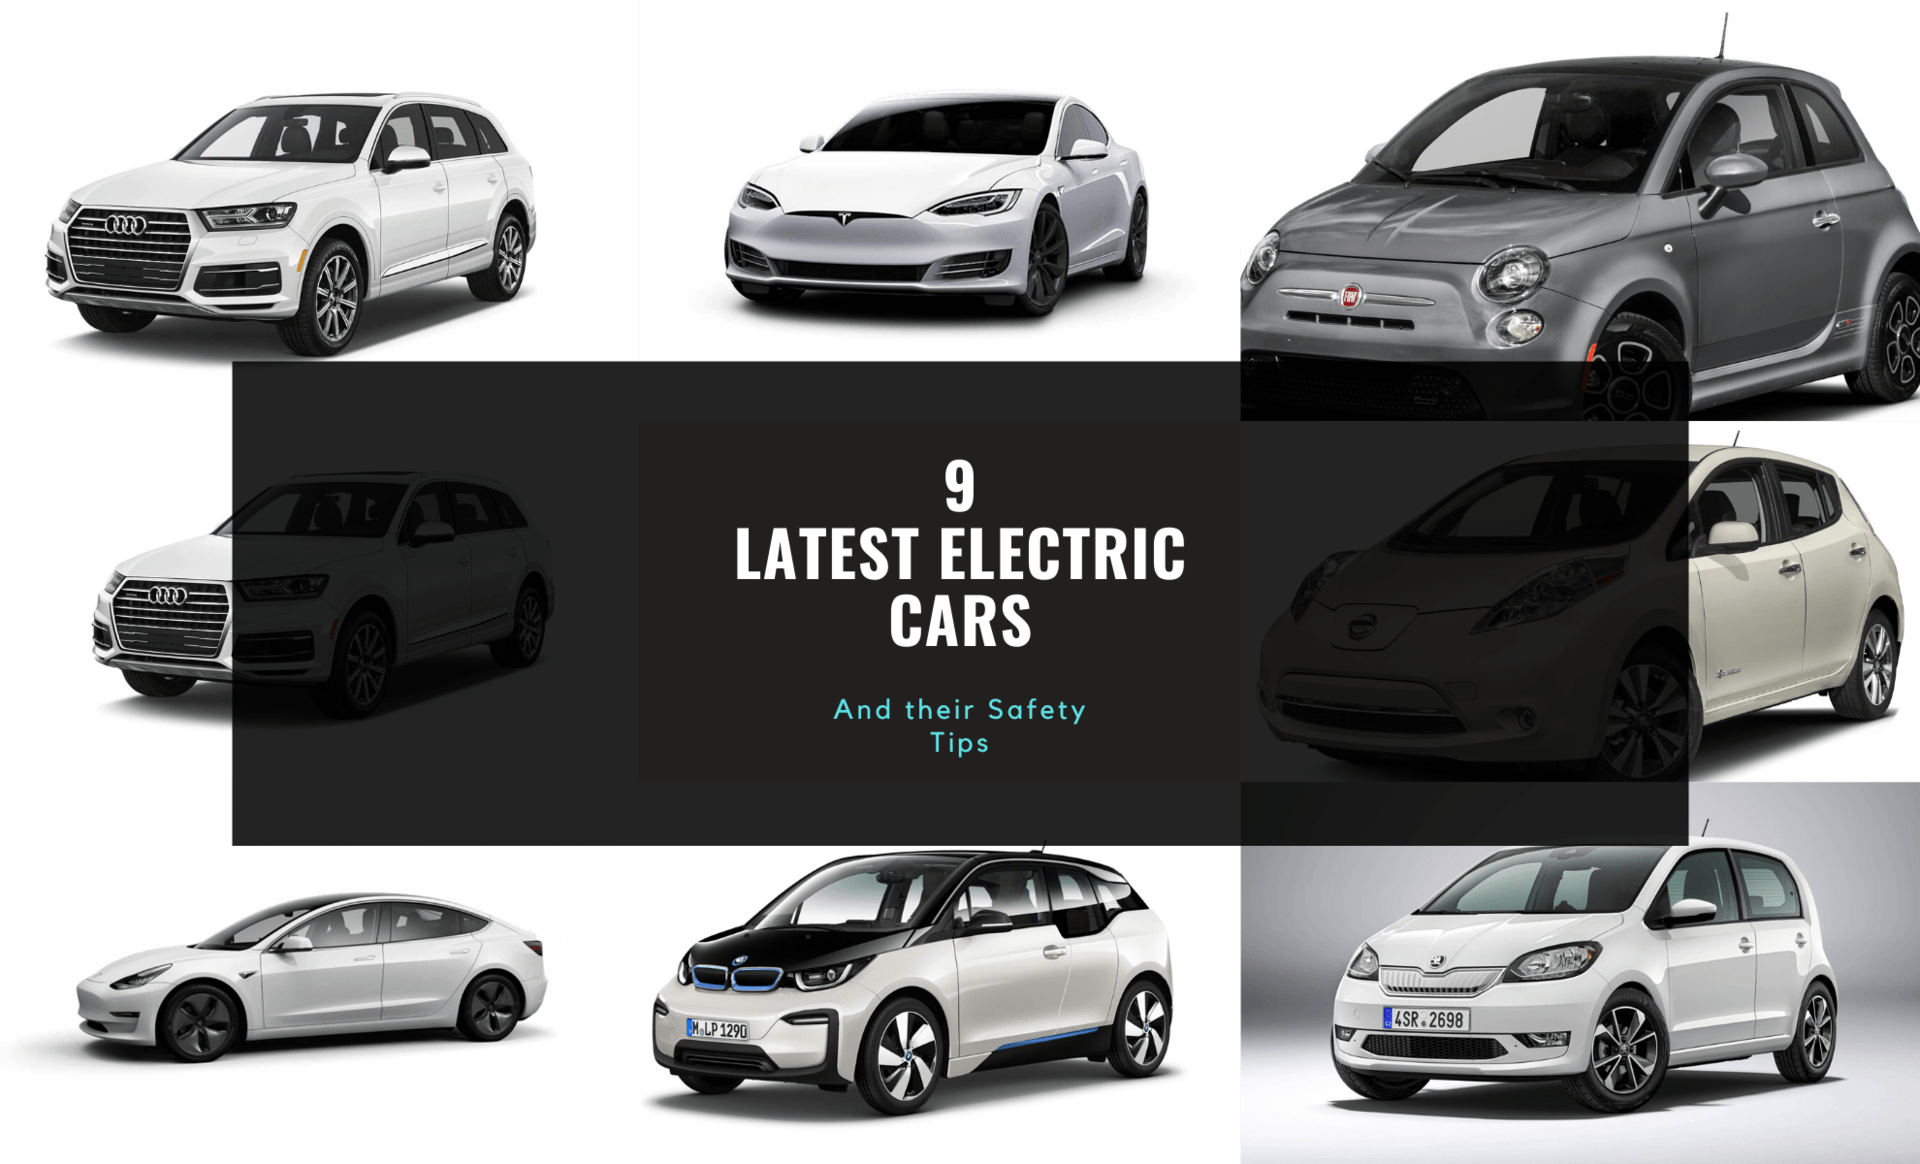 9 Latest Electric Cars with their Features and Safety Tips